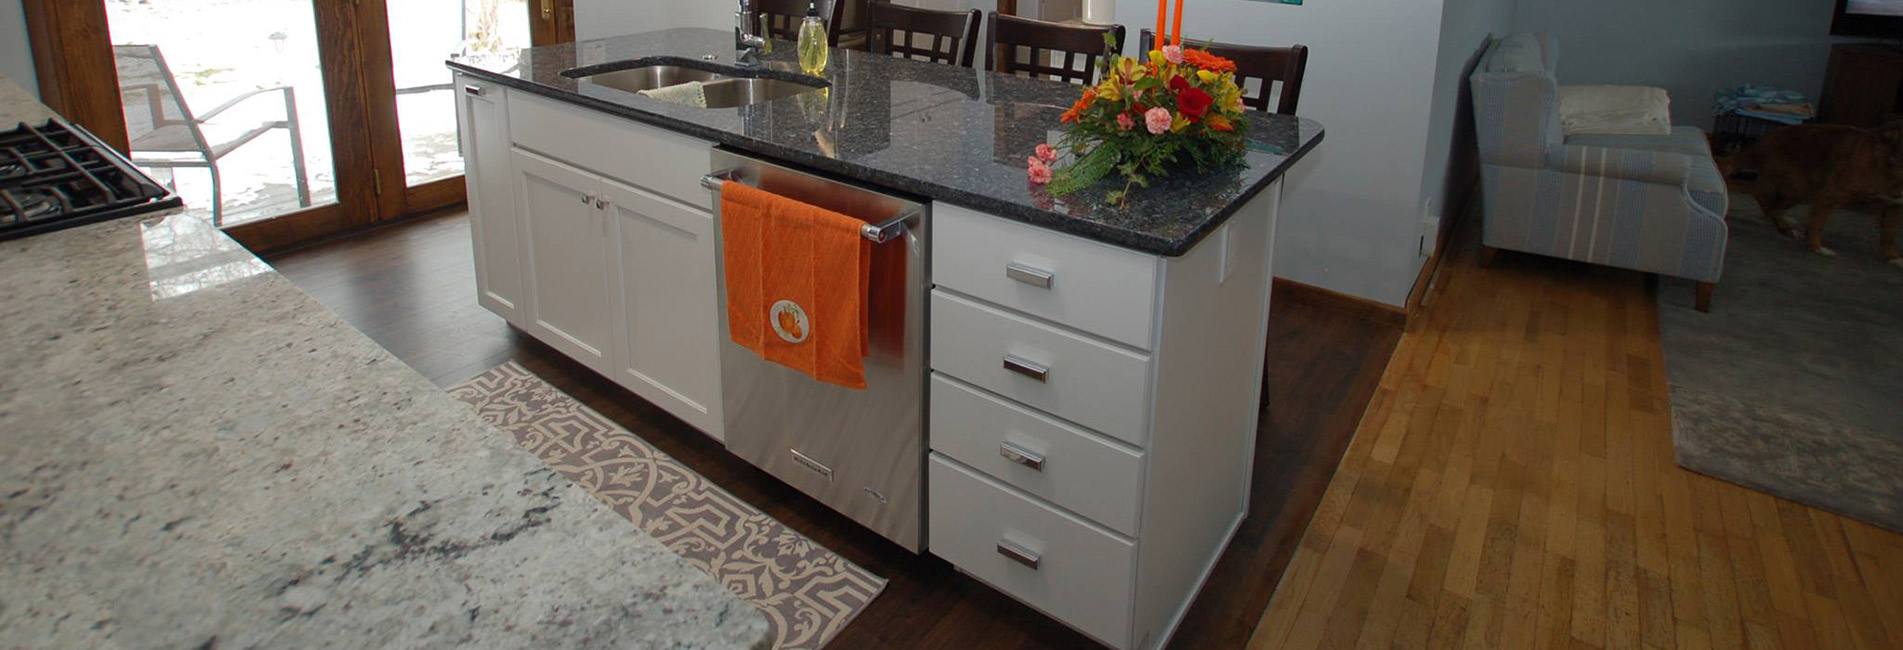 Give Your Kitchen A Facelift With Our Custom Countertops